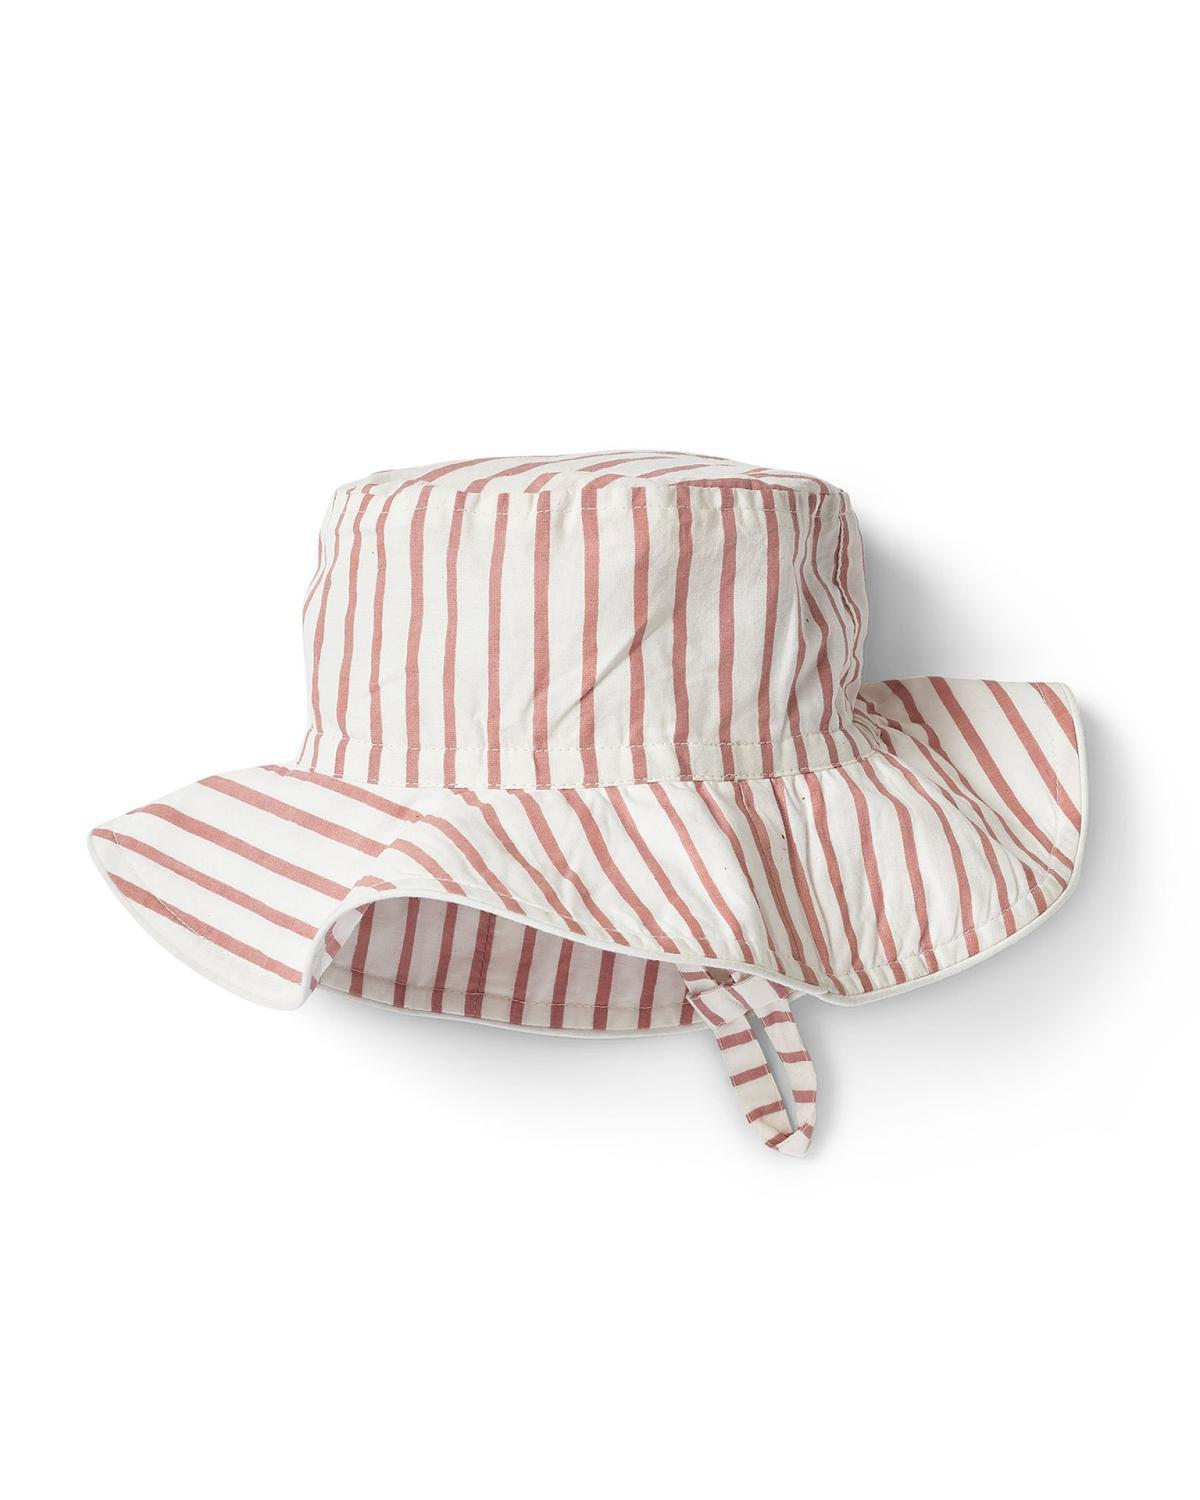 30c92a2d02cd Little pehr designs inc baby accessories 0-6 stripes away bucket hat in pink